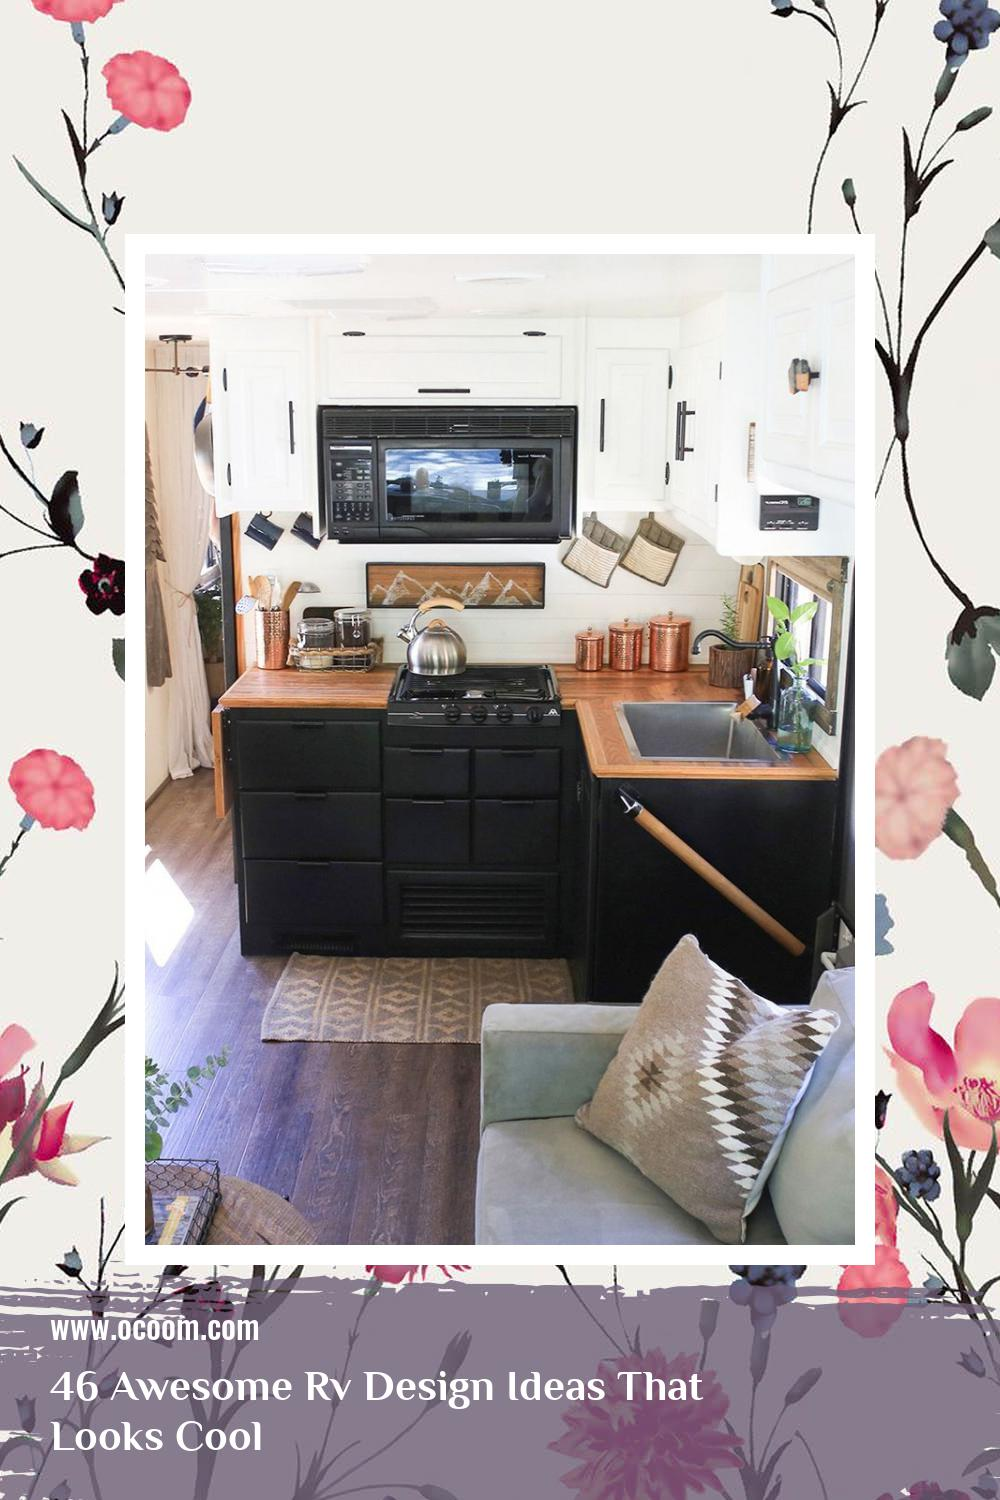 46 Awesome Rv Design Ideas That Looks Cool 1